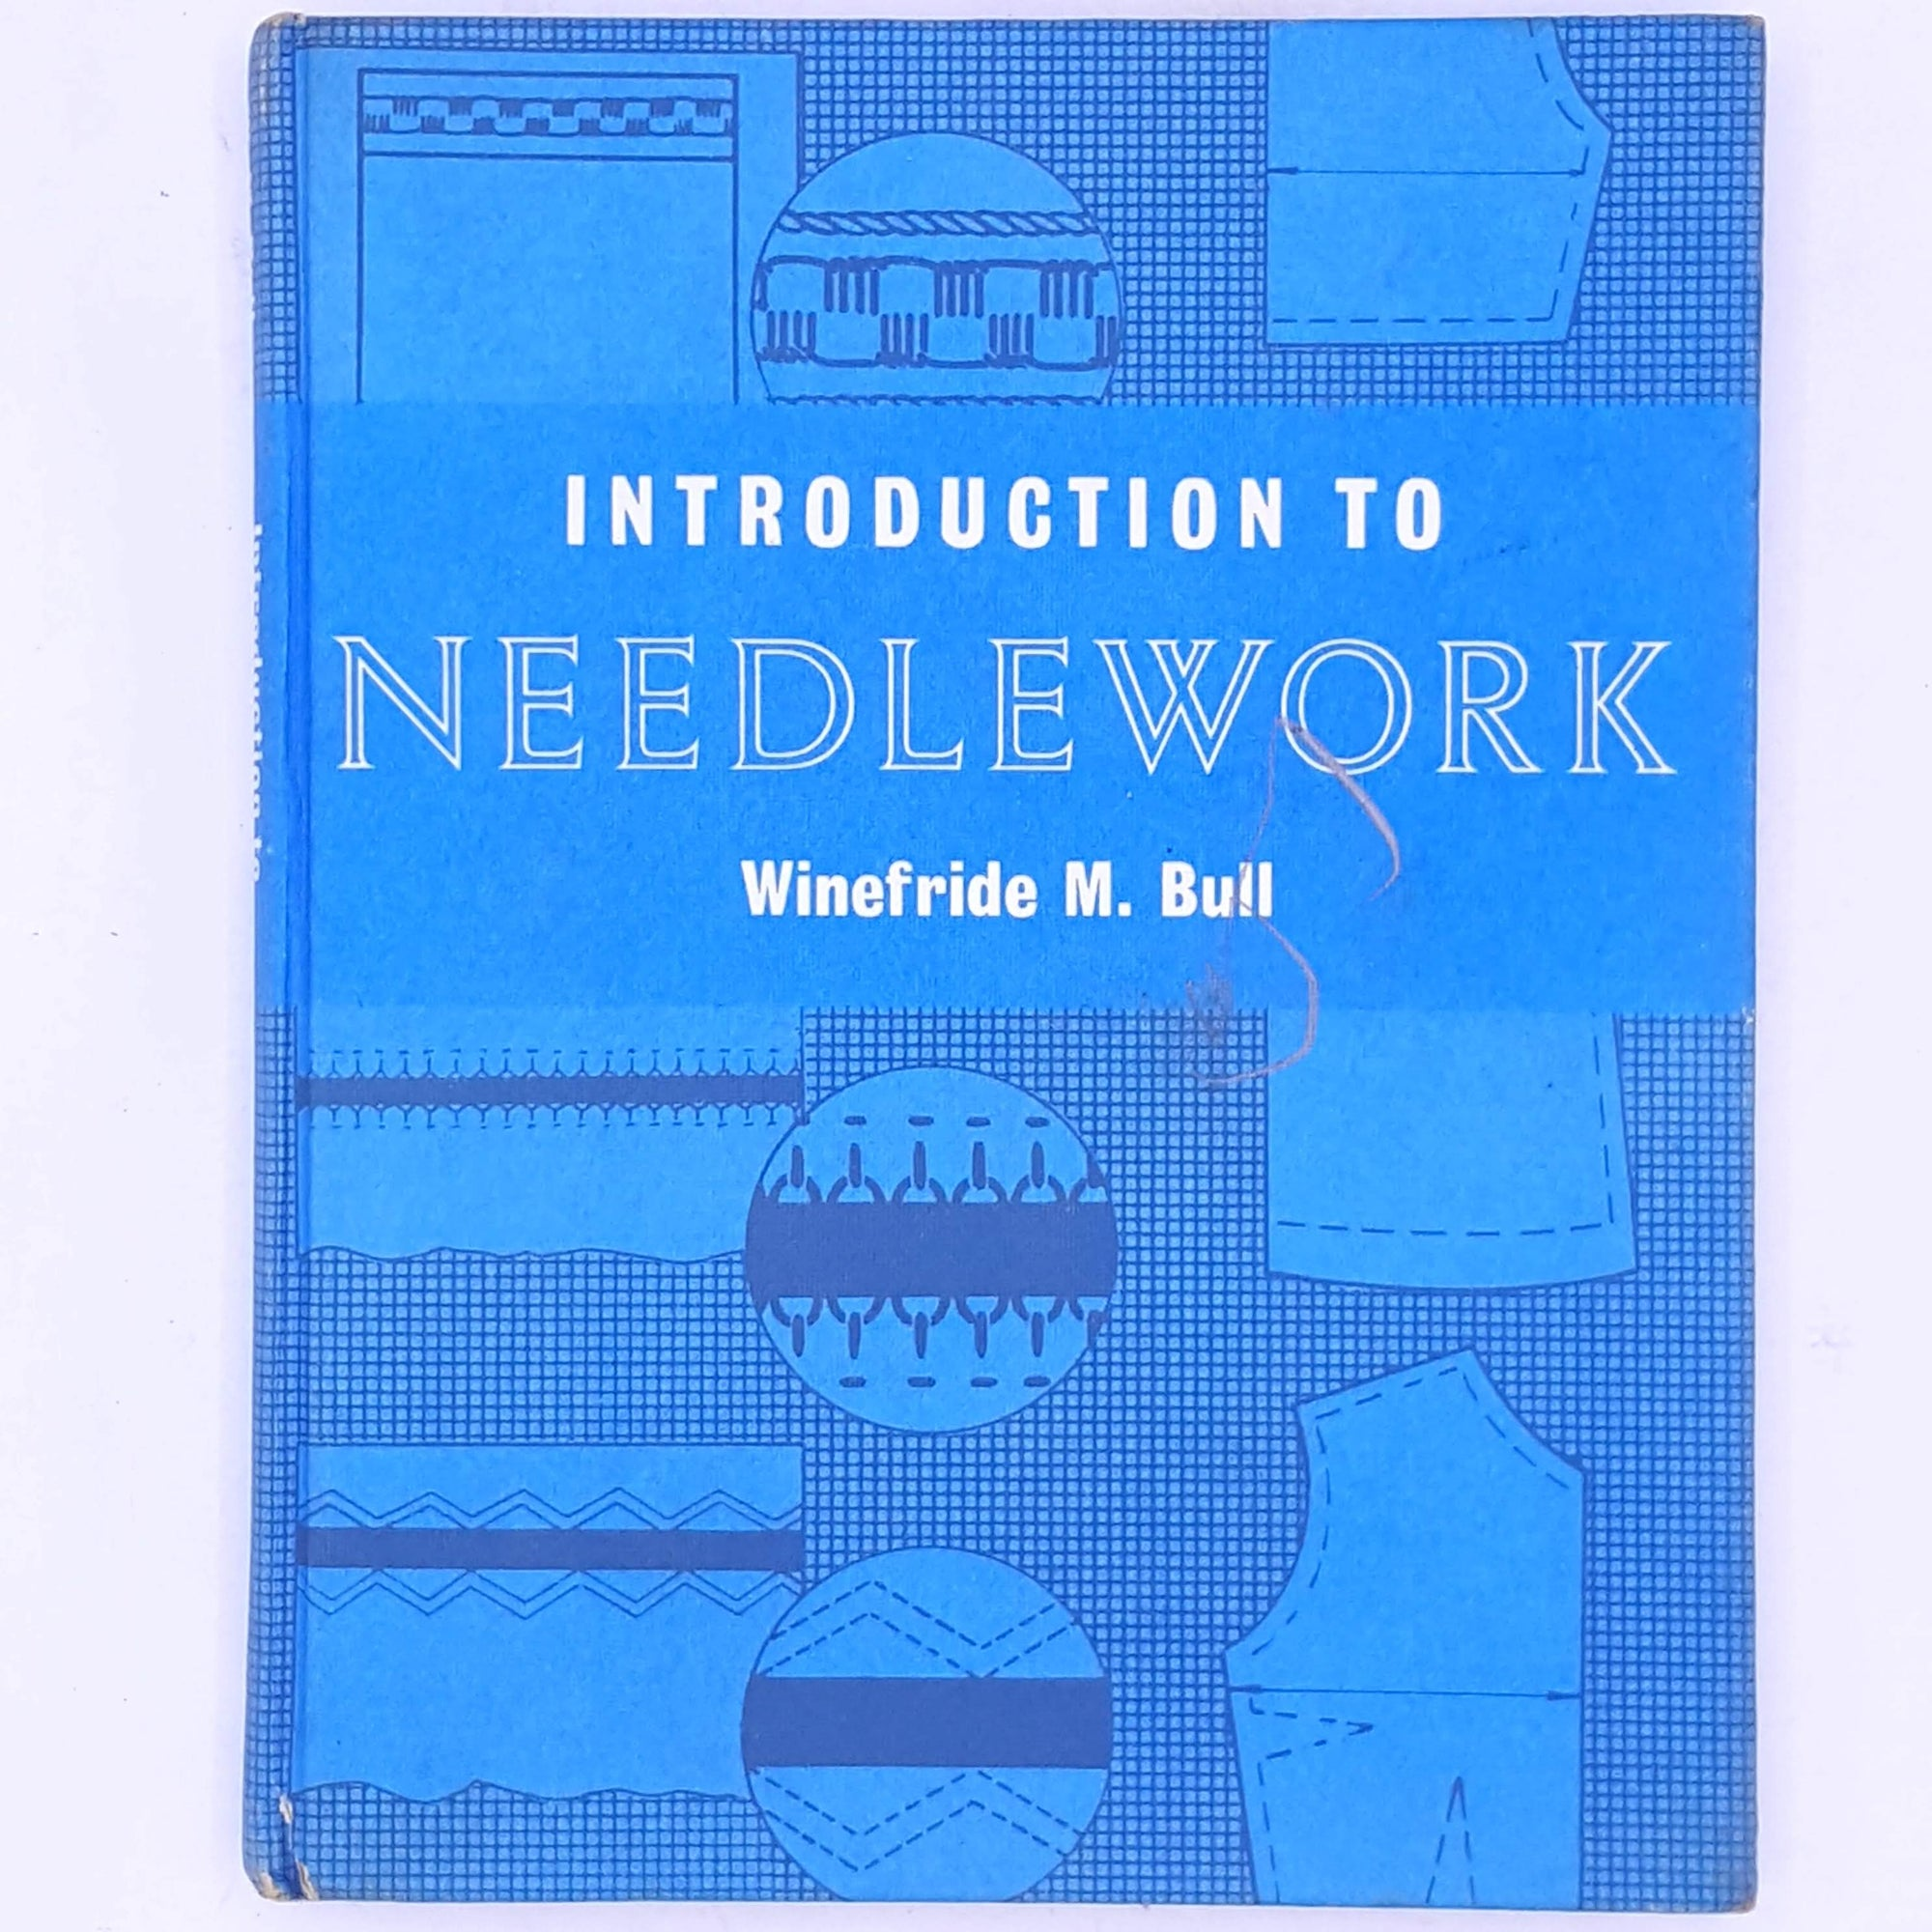 Introduction to Needlework by Winefride M. Bull